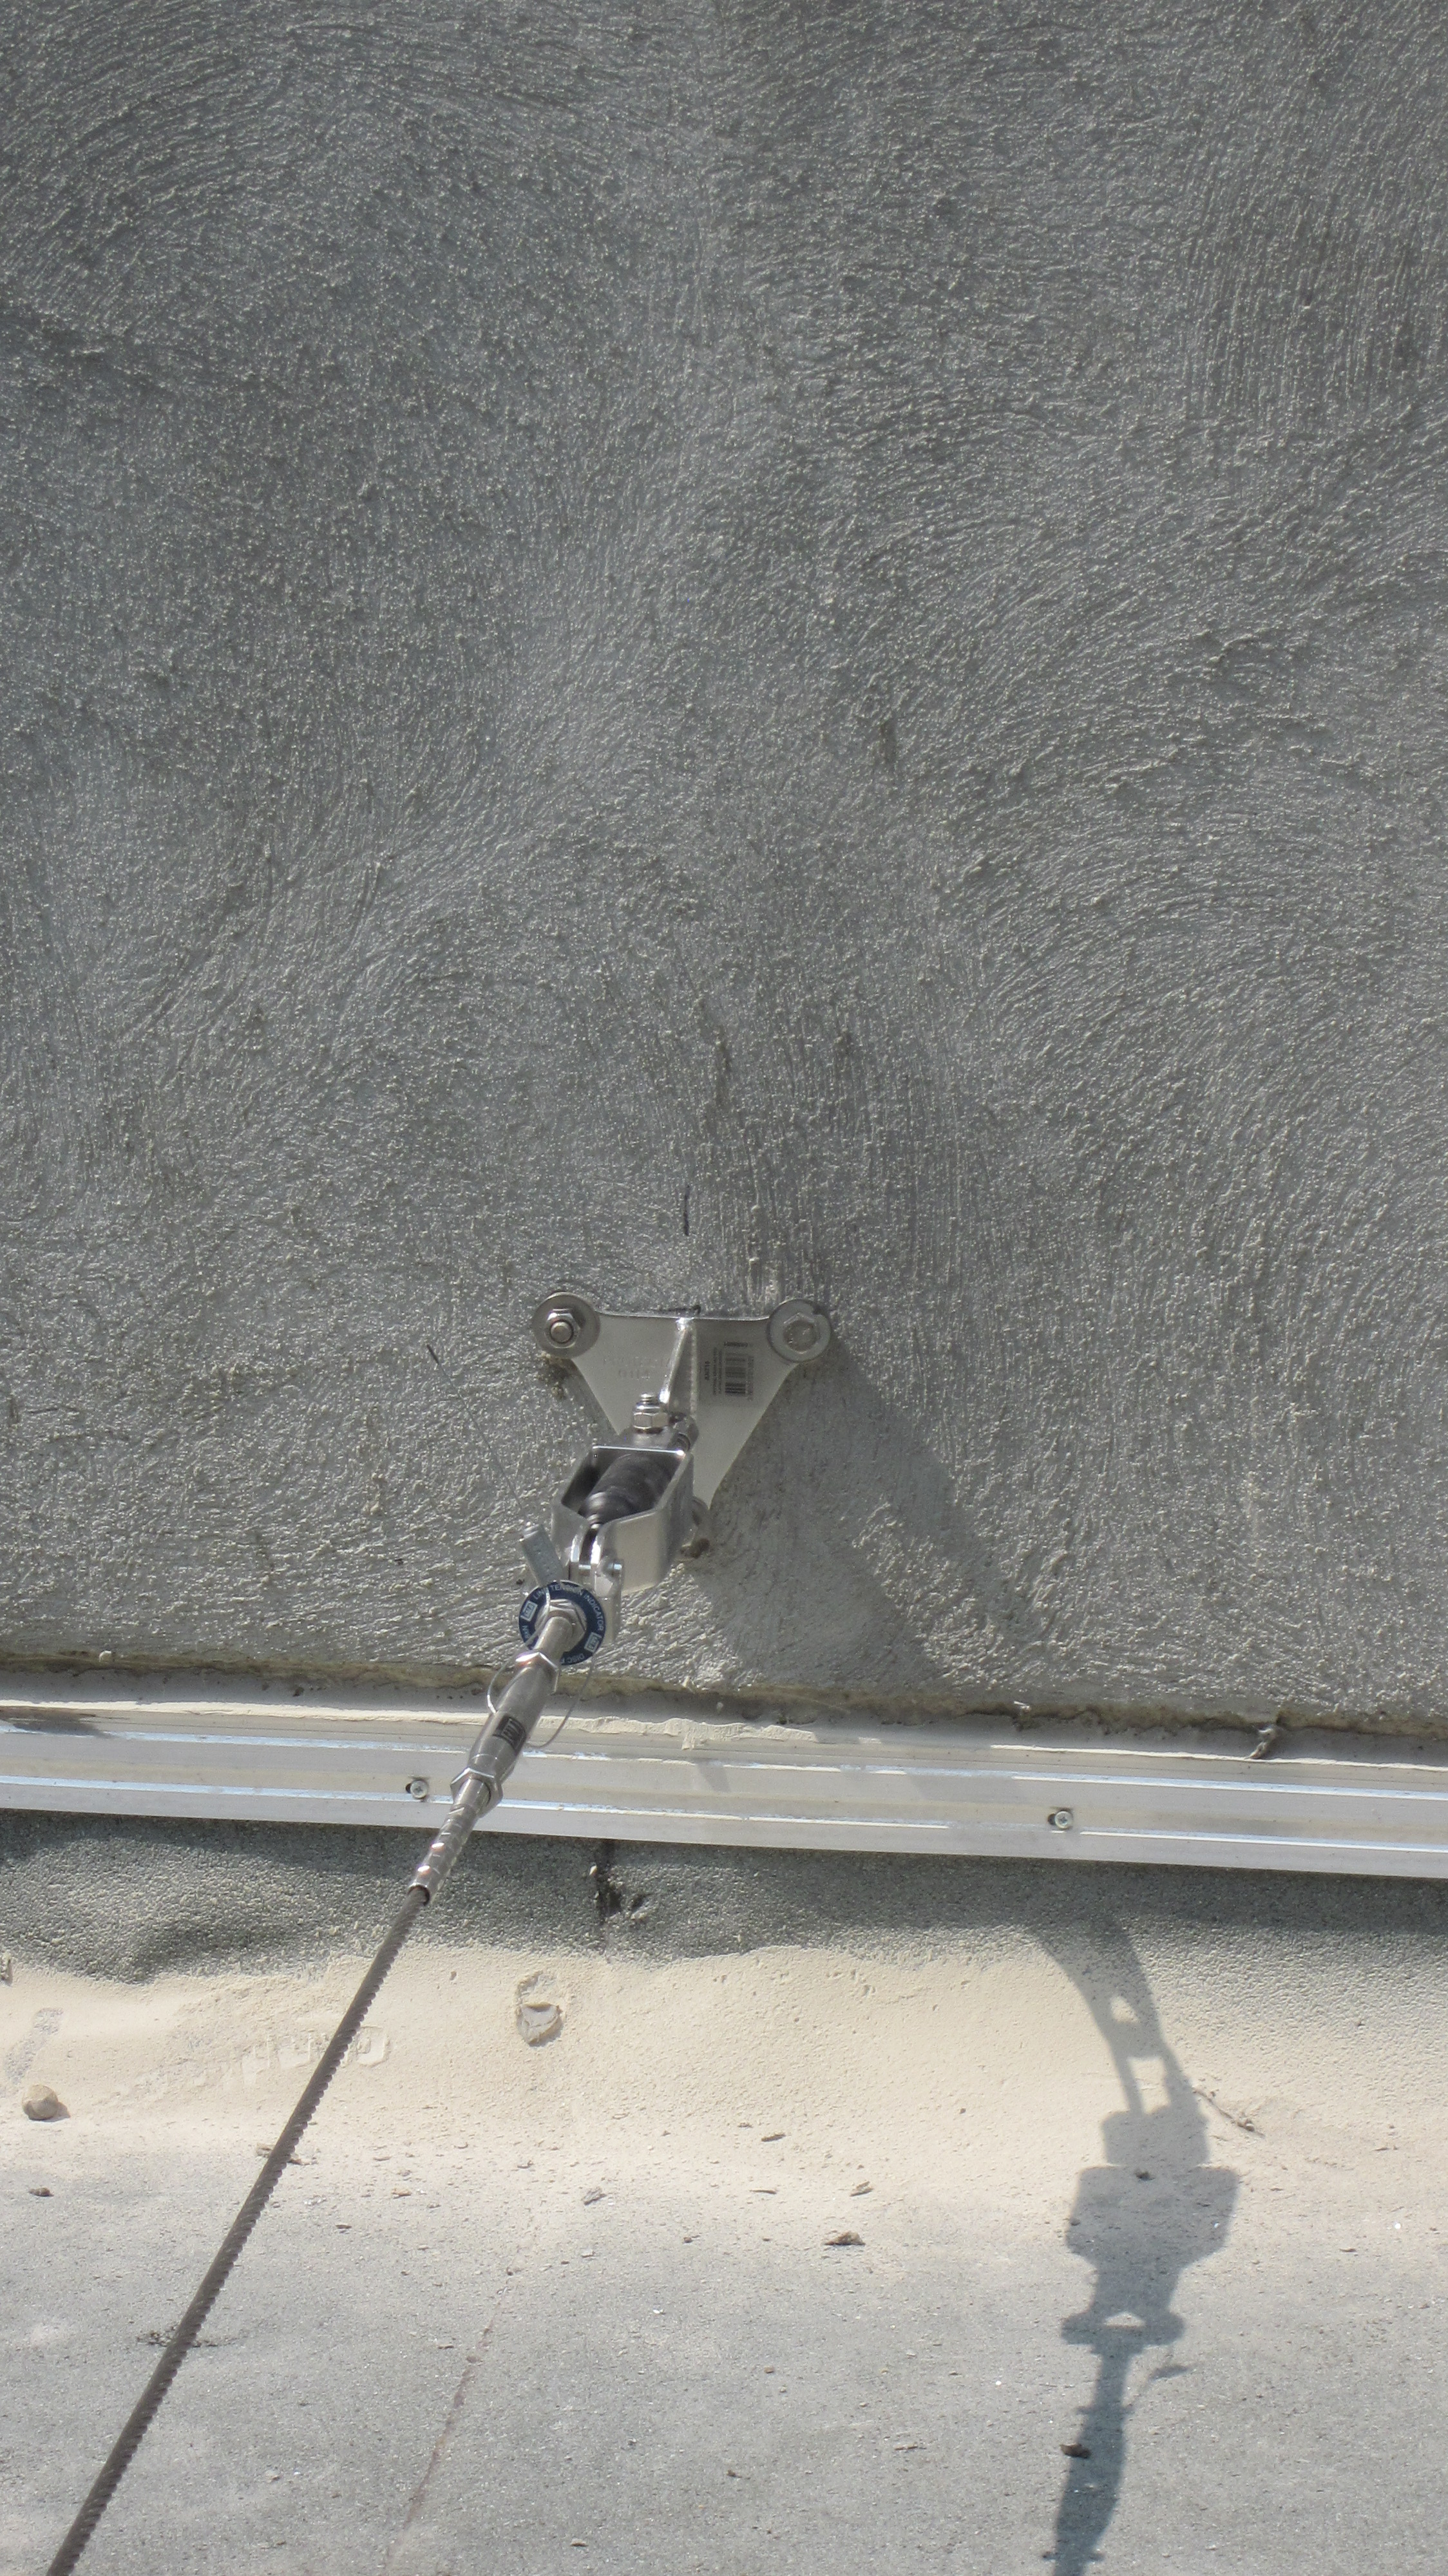 JOMY offers a range of safety solution accessories to the ease and safety building facade maintenance access. Vertical and horizontal fall restraint systems, fixed or removable guardrails, and descent devices are available to improve the safety of access